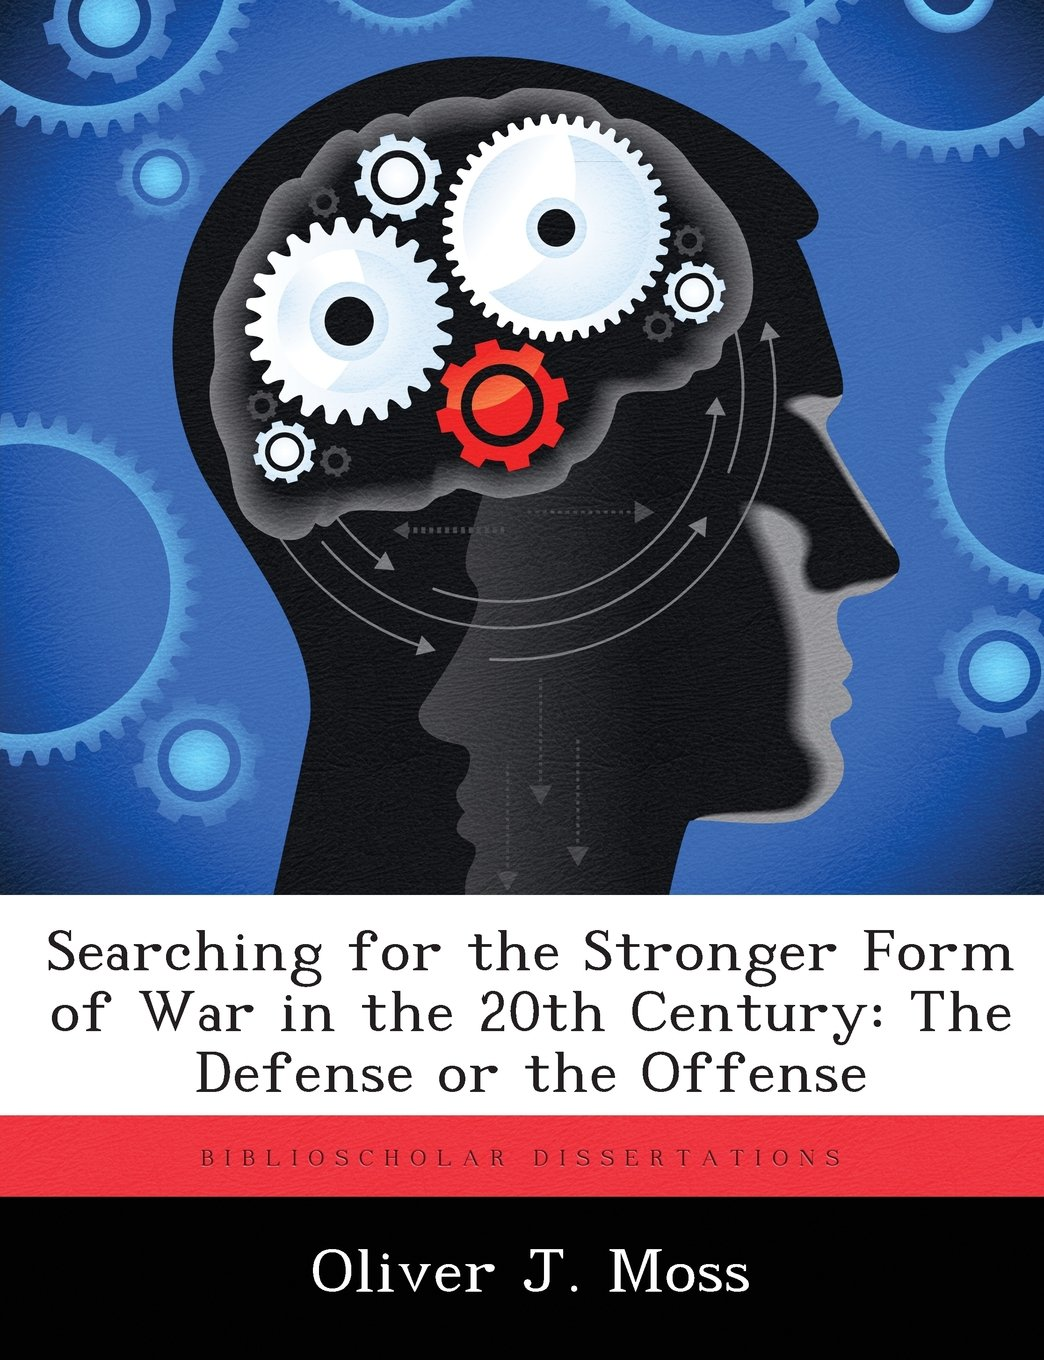 Searching for the Stronger Form of War in the 20th Century: The Defense or the Offense ebook